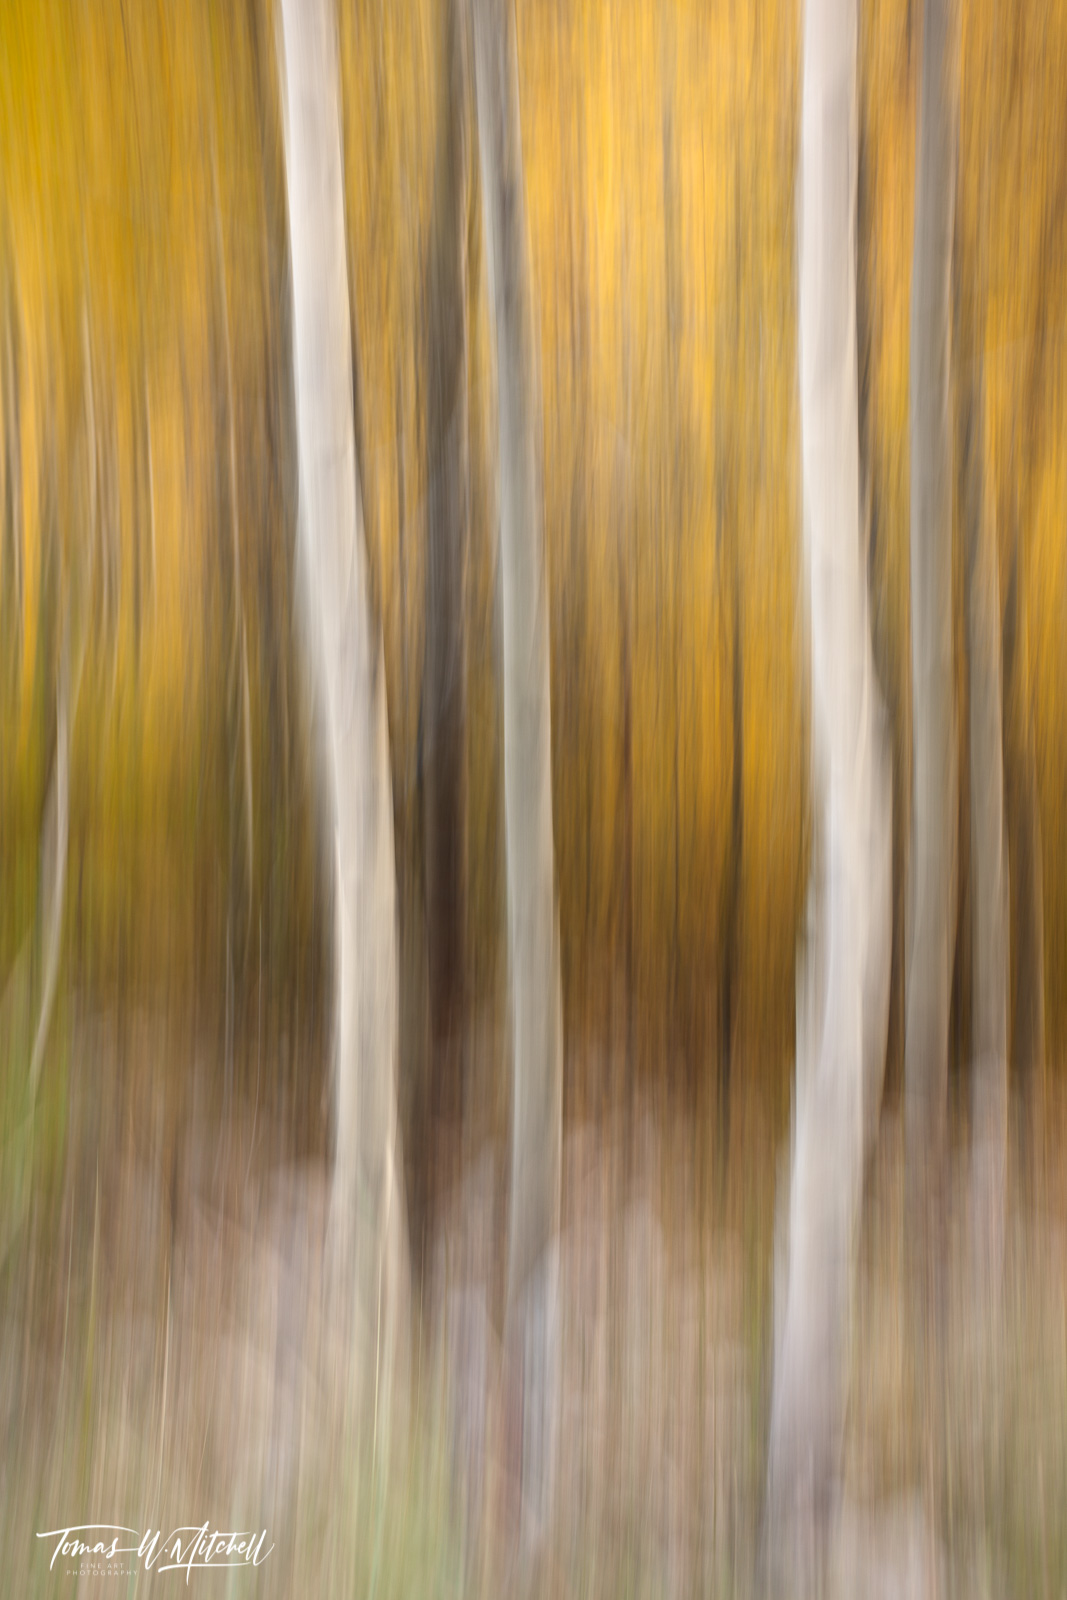 Limited Edition of 10 Museum Grade, Fine Art Prints. While Photographing the fall colors in Lamoille Canyon, NevadaI found...